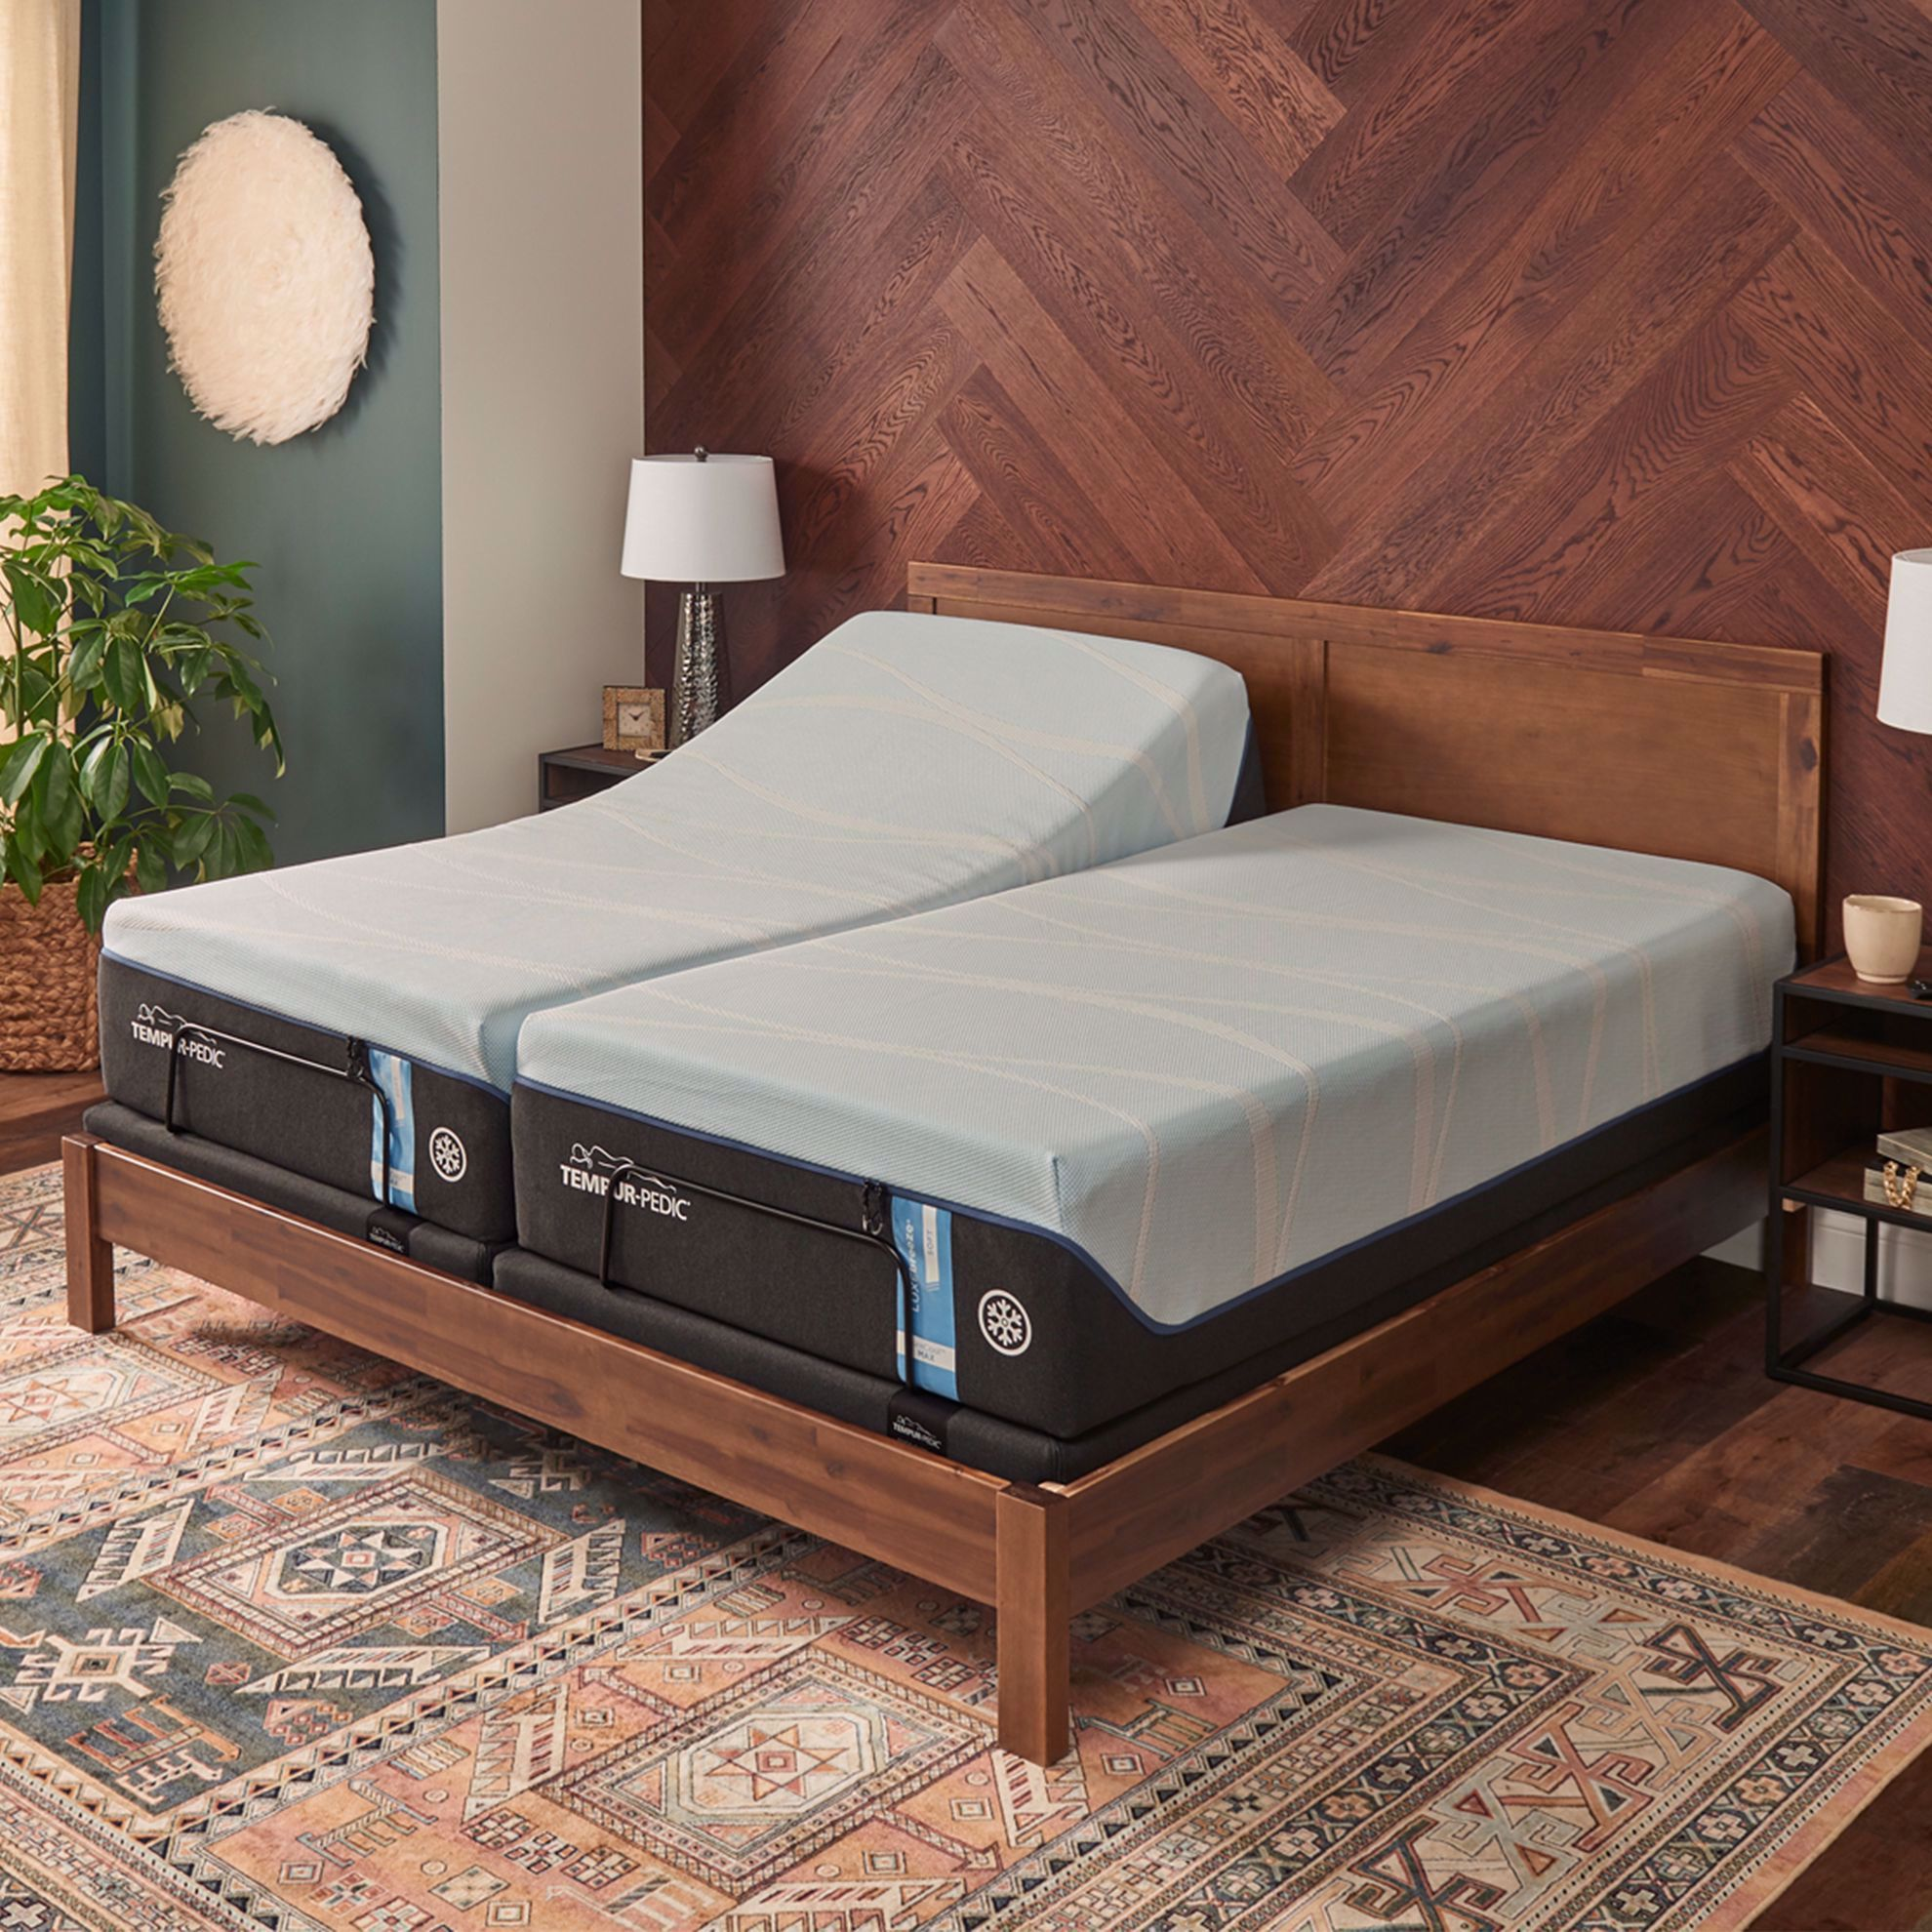 Picture of Tempur-Pedic Ergo Queen Adjustable Smart Base